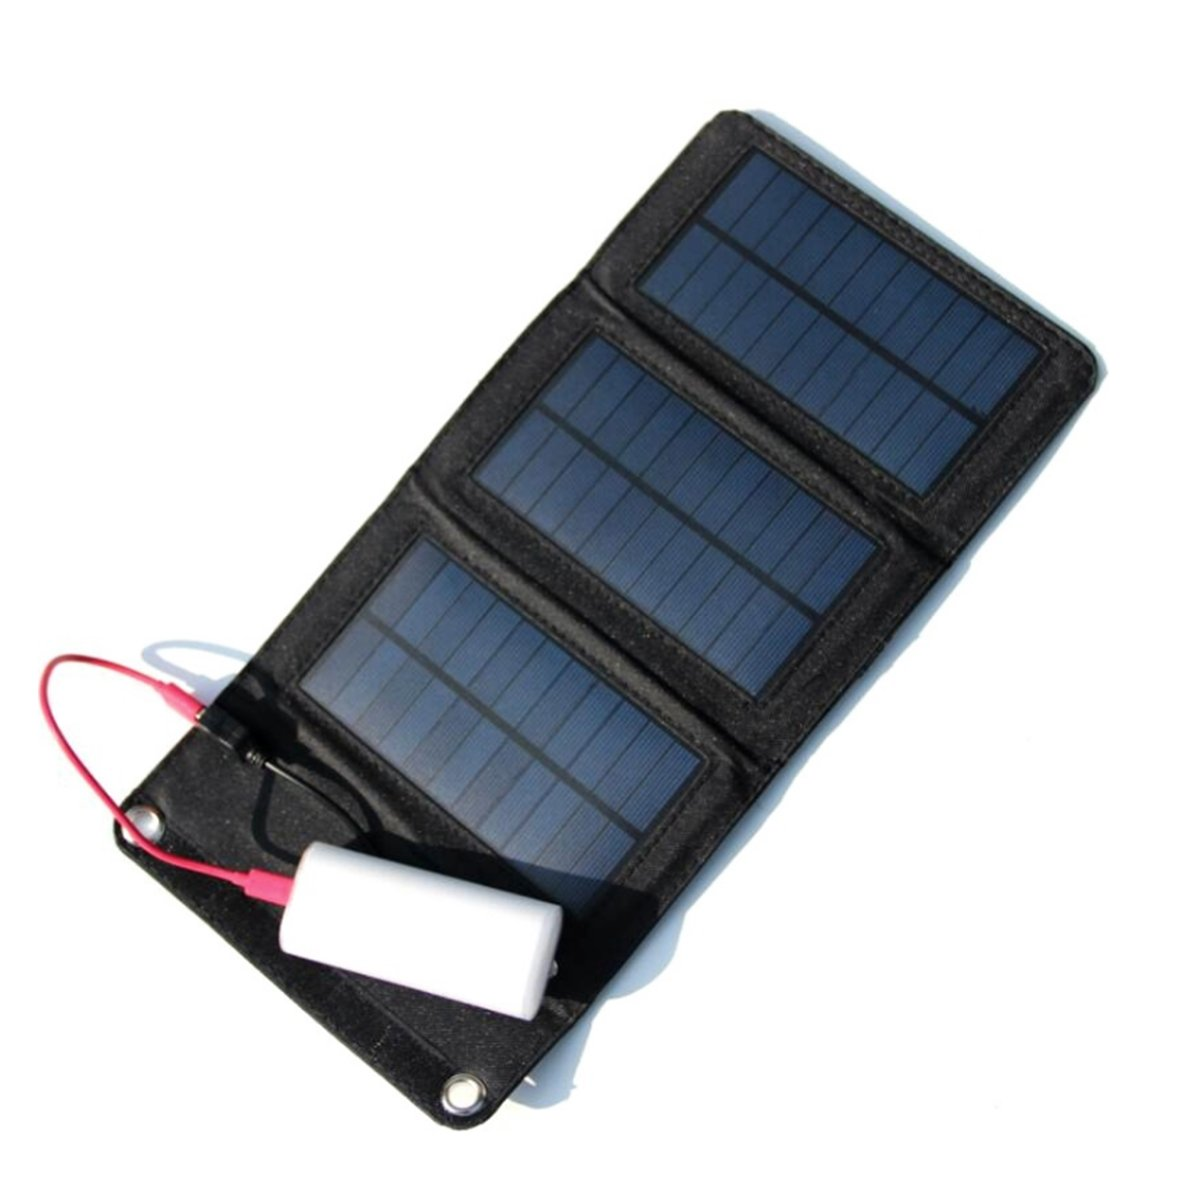 Movable Jury - 5v Portable Solar Panel Outdoor Travel Foldable Bank Usb Port - Dialog Box Instrument Takeout Impanel Take-Away Empanel Board Outboard - 1PCs by Unknown (Image #2)